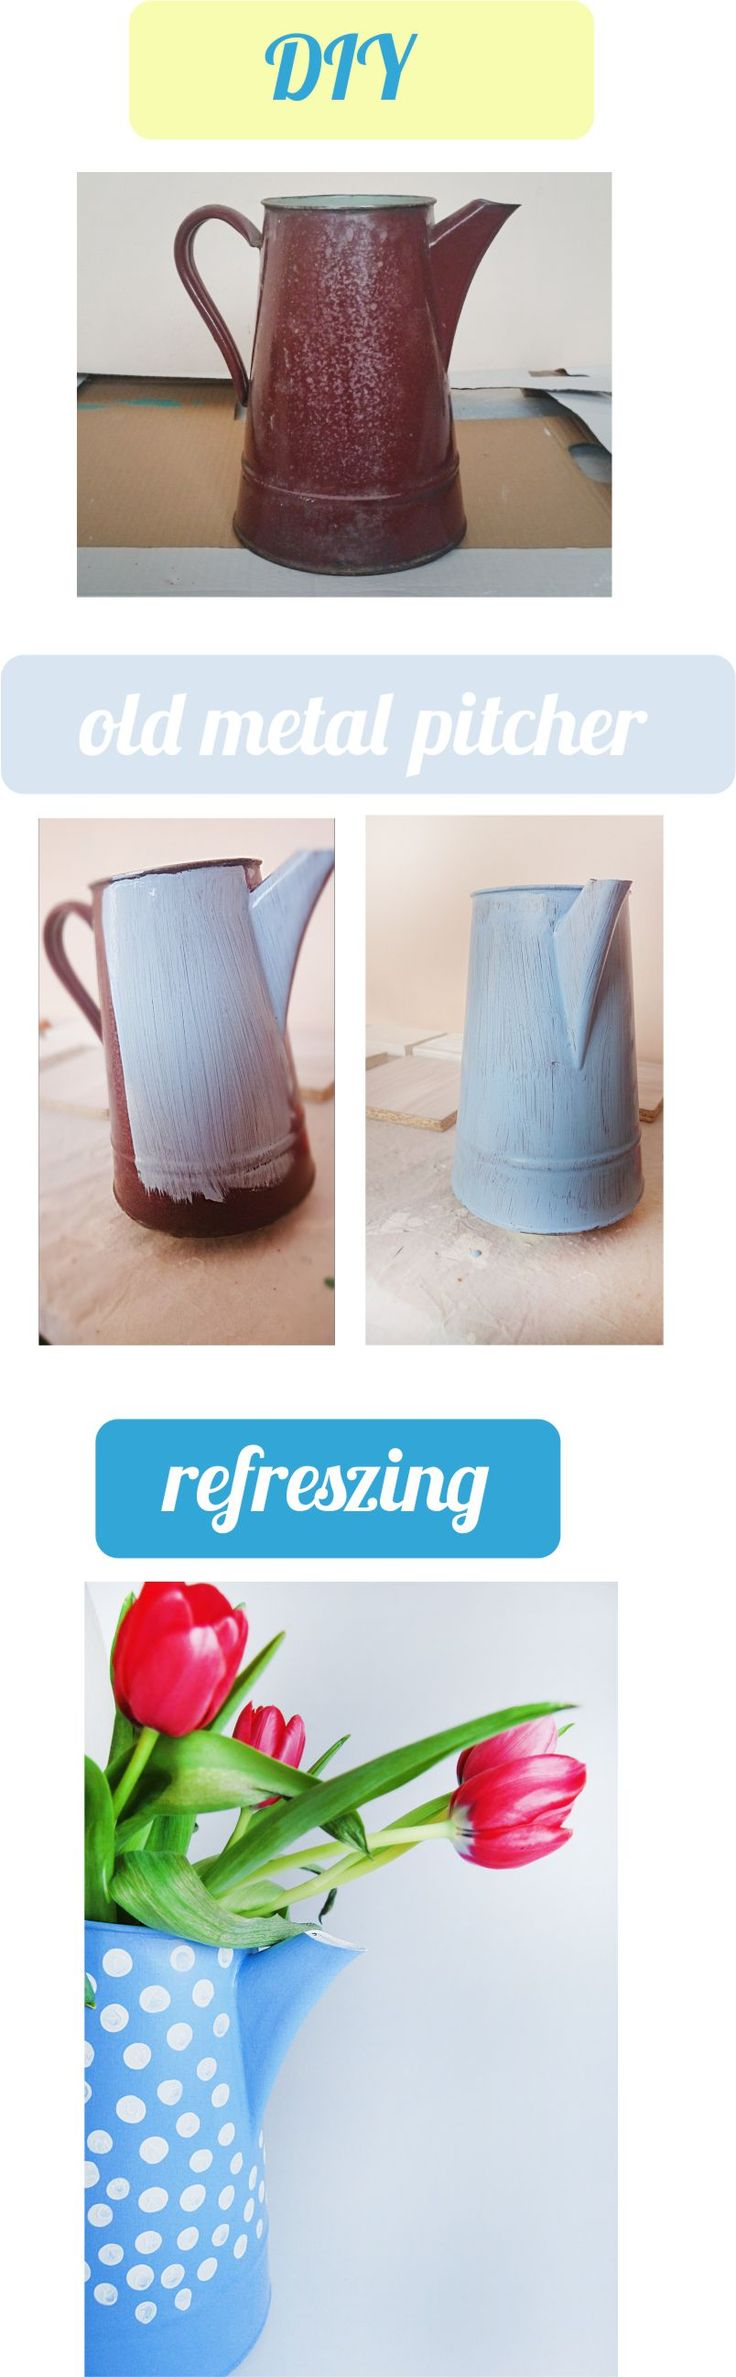 Old, metal, pitcher. DIY. Painted with dots. Now used as a flower vase. DIY, renovation, refreszing.